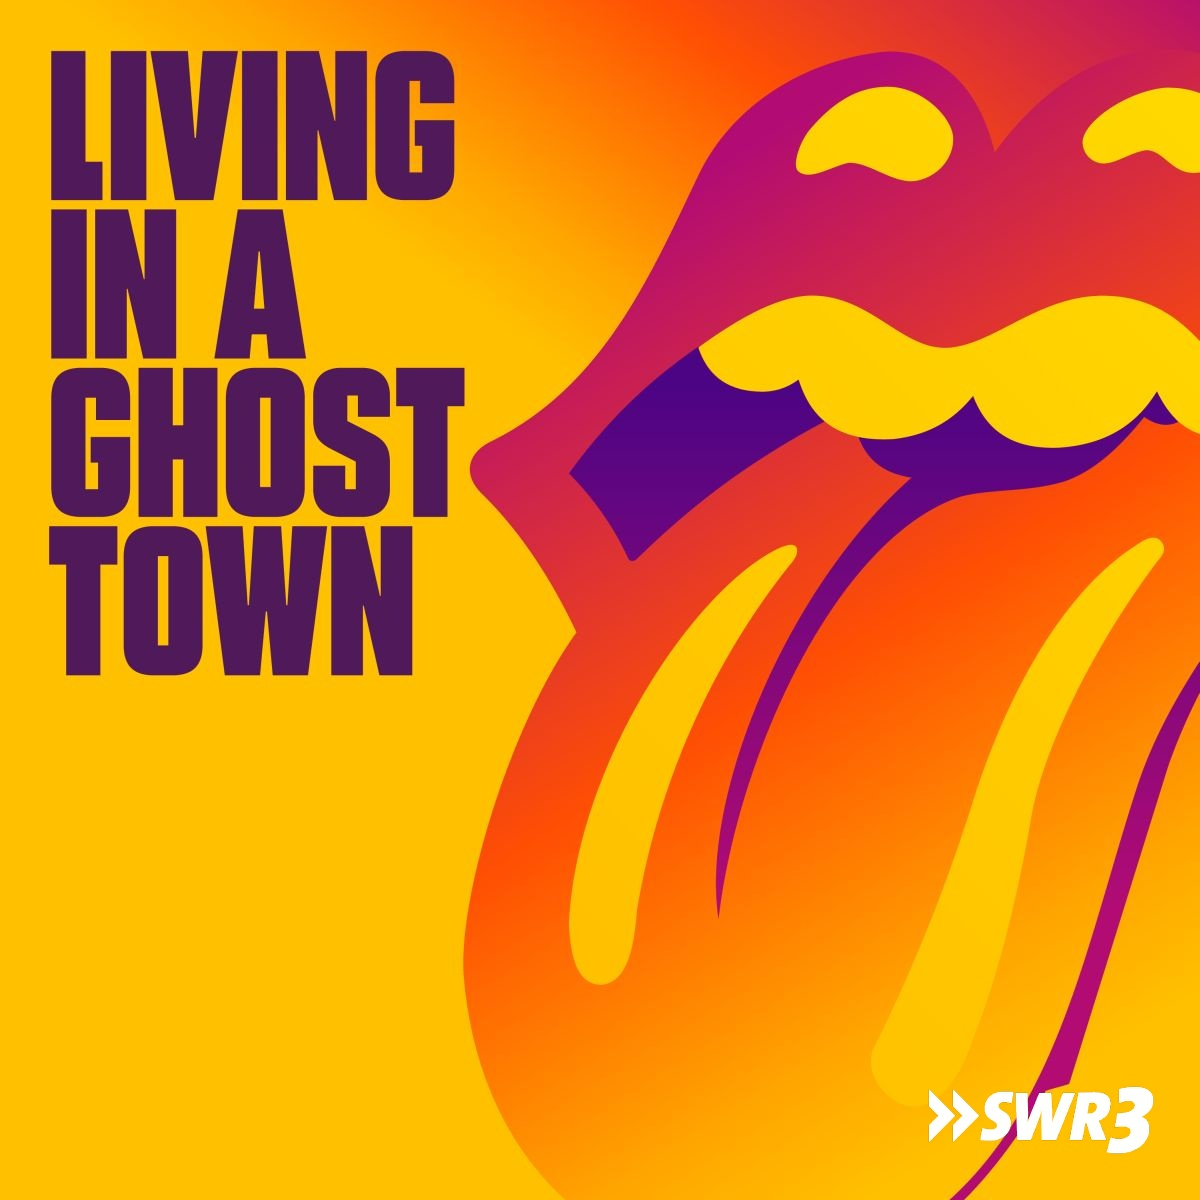 Living in a ghost town (Foto: The Rolling Stones)